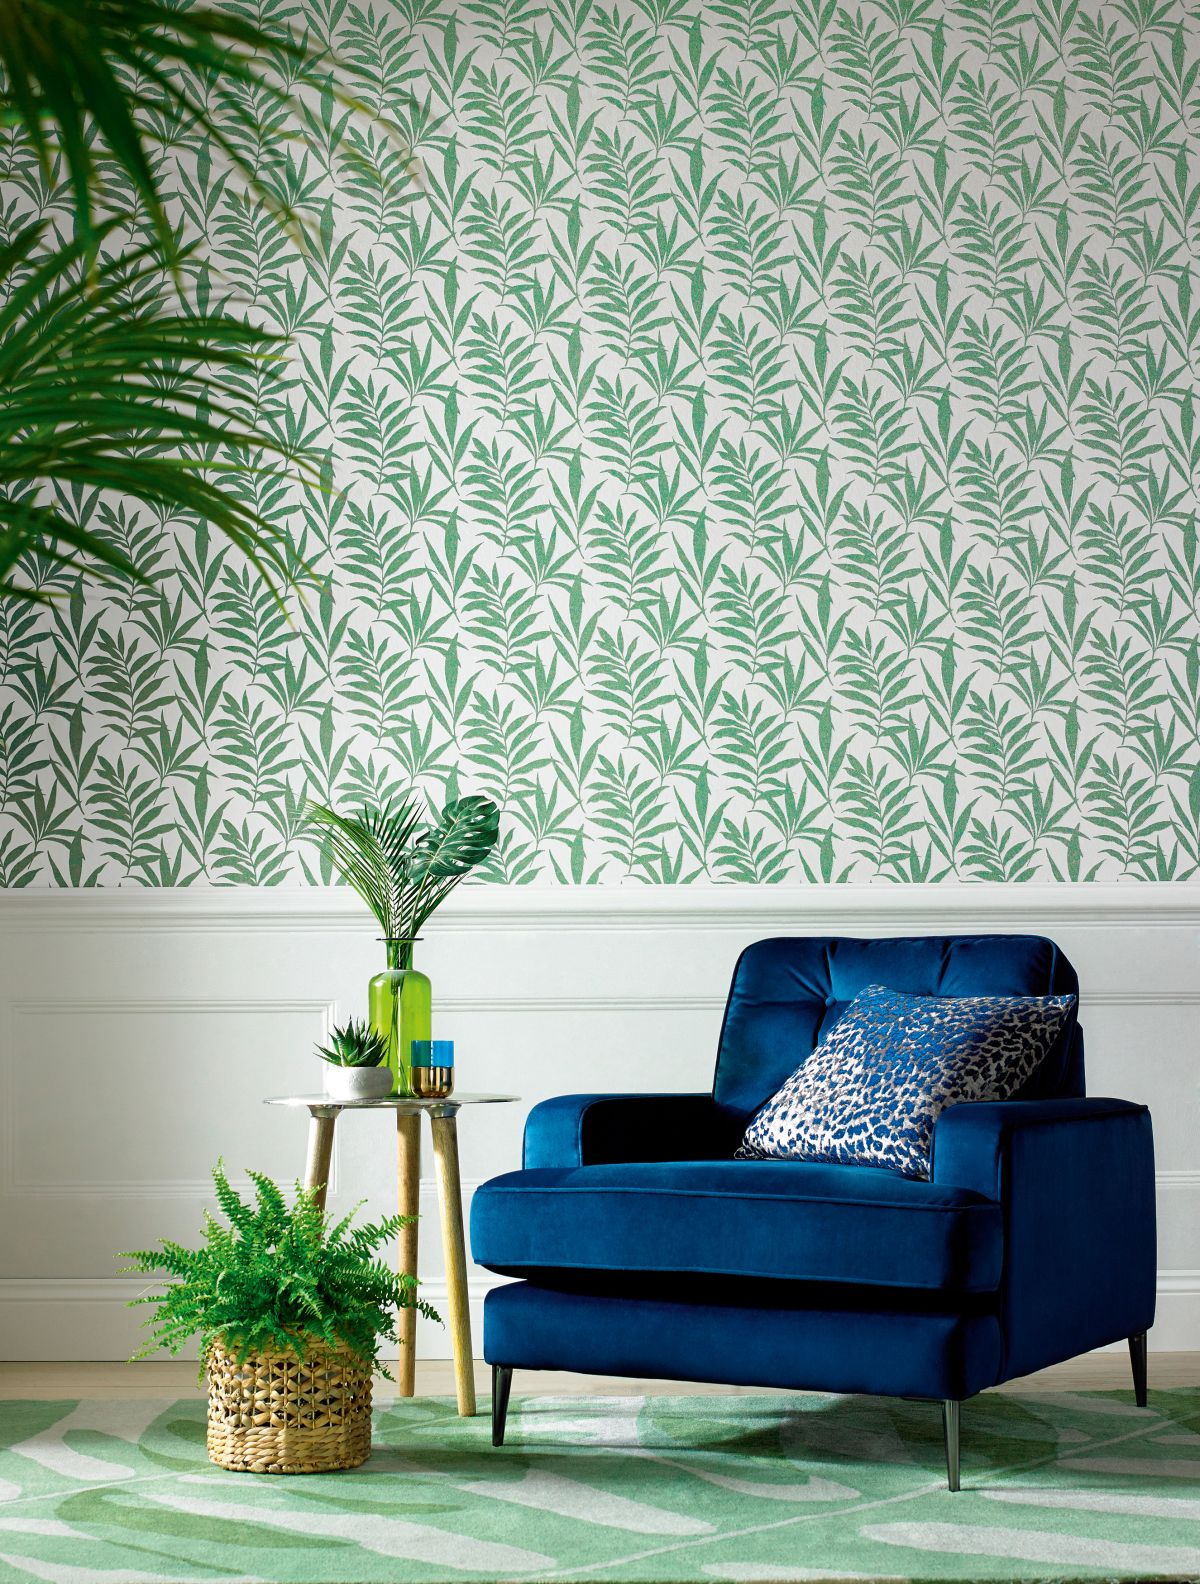 Botanical Wallpapers 22 Fabulous Floral Leaf And Plant